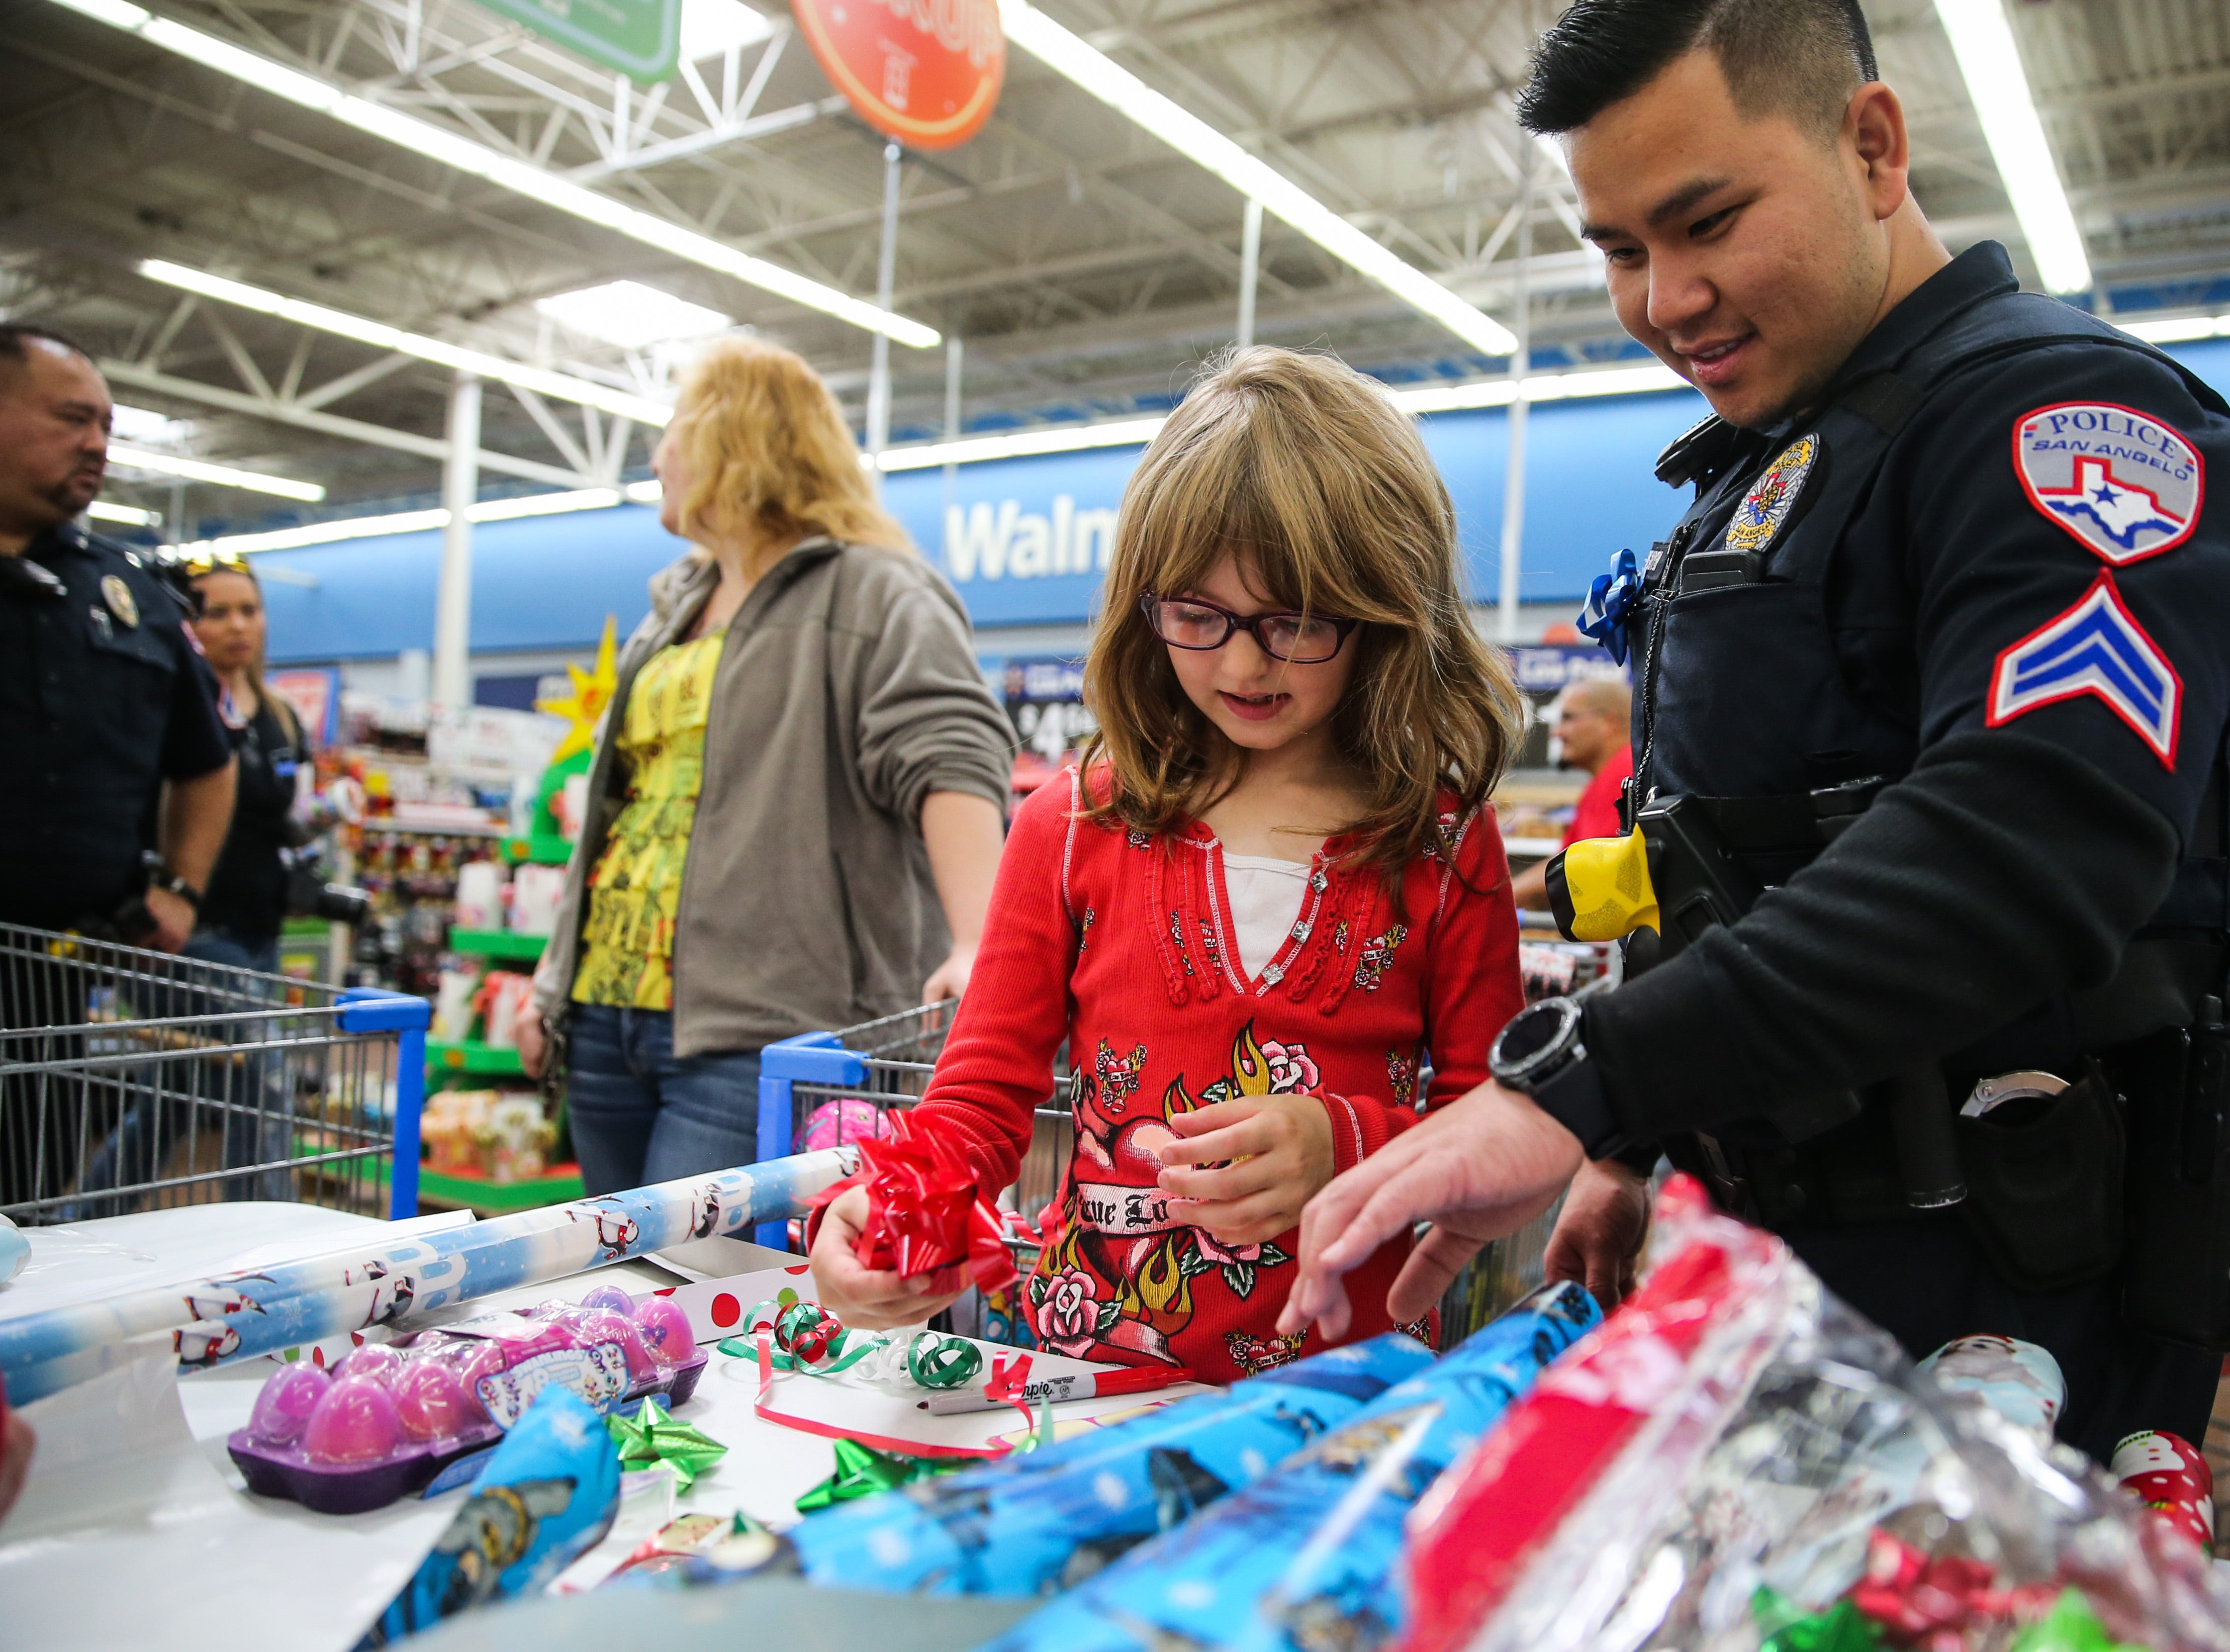 Nicole Odell, 6, and Officer Long Nguyen pick bows for the gifts during Shop with a Cop event Saturday, Dec. 15, 2018, at Walmart.